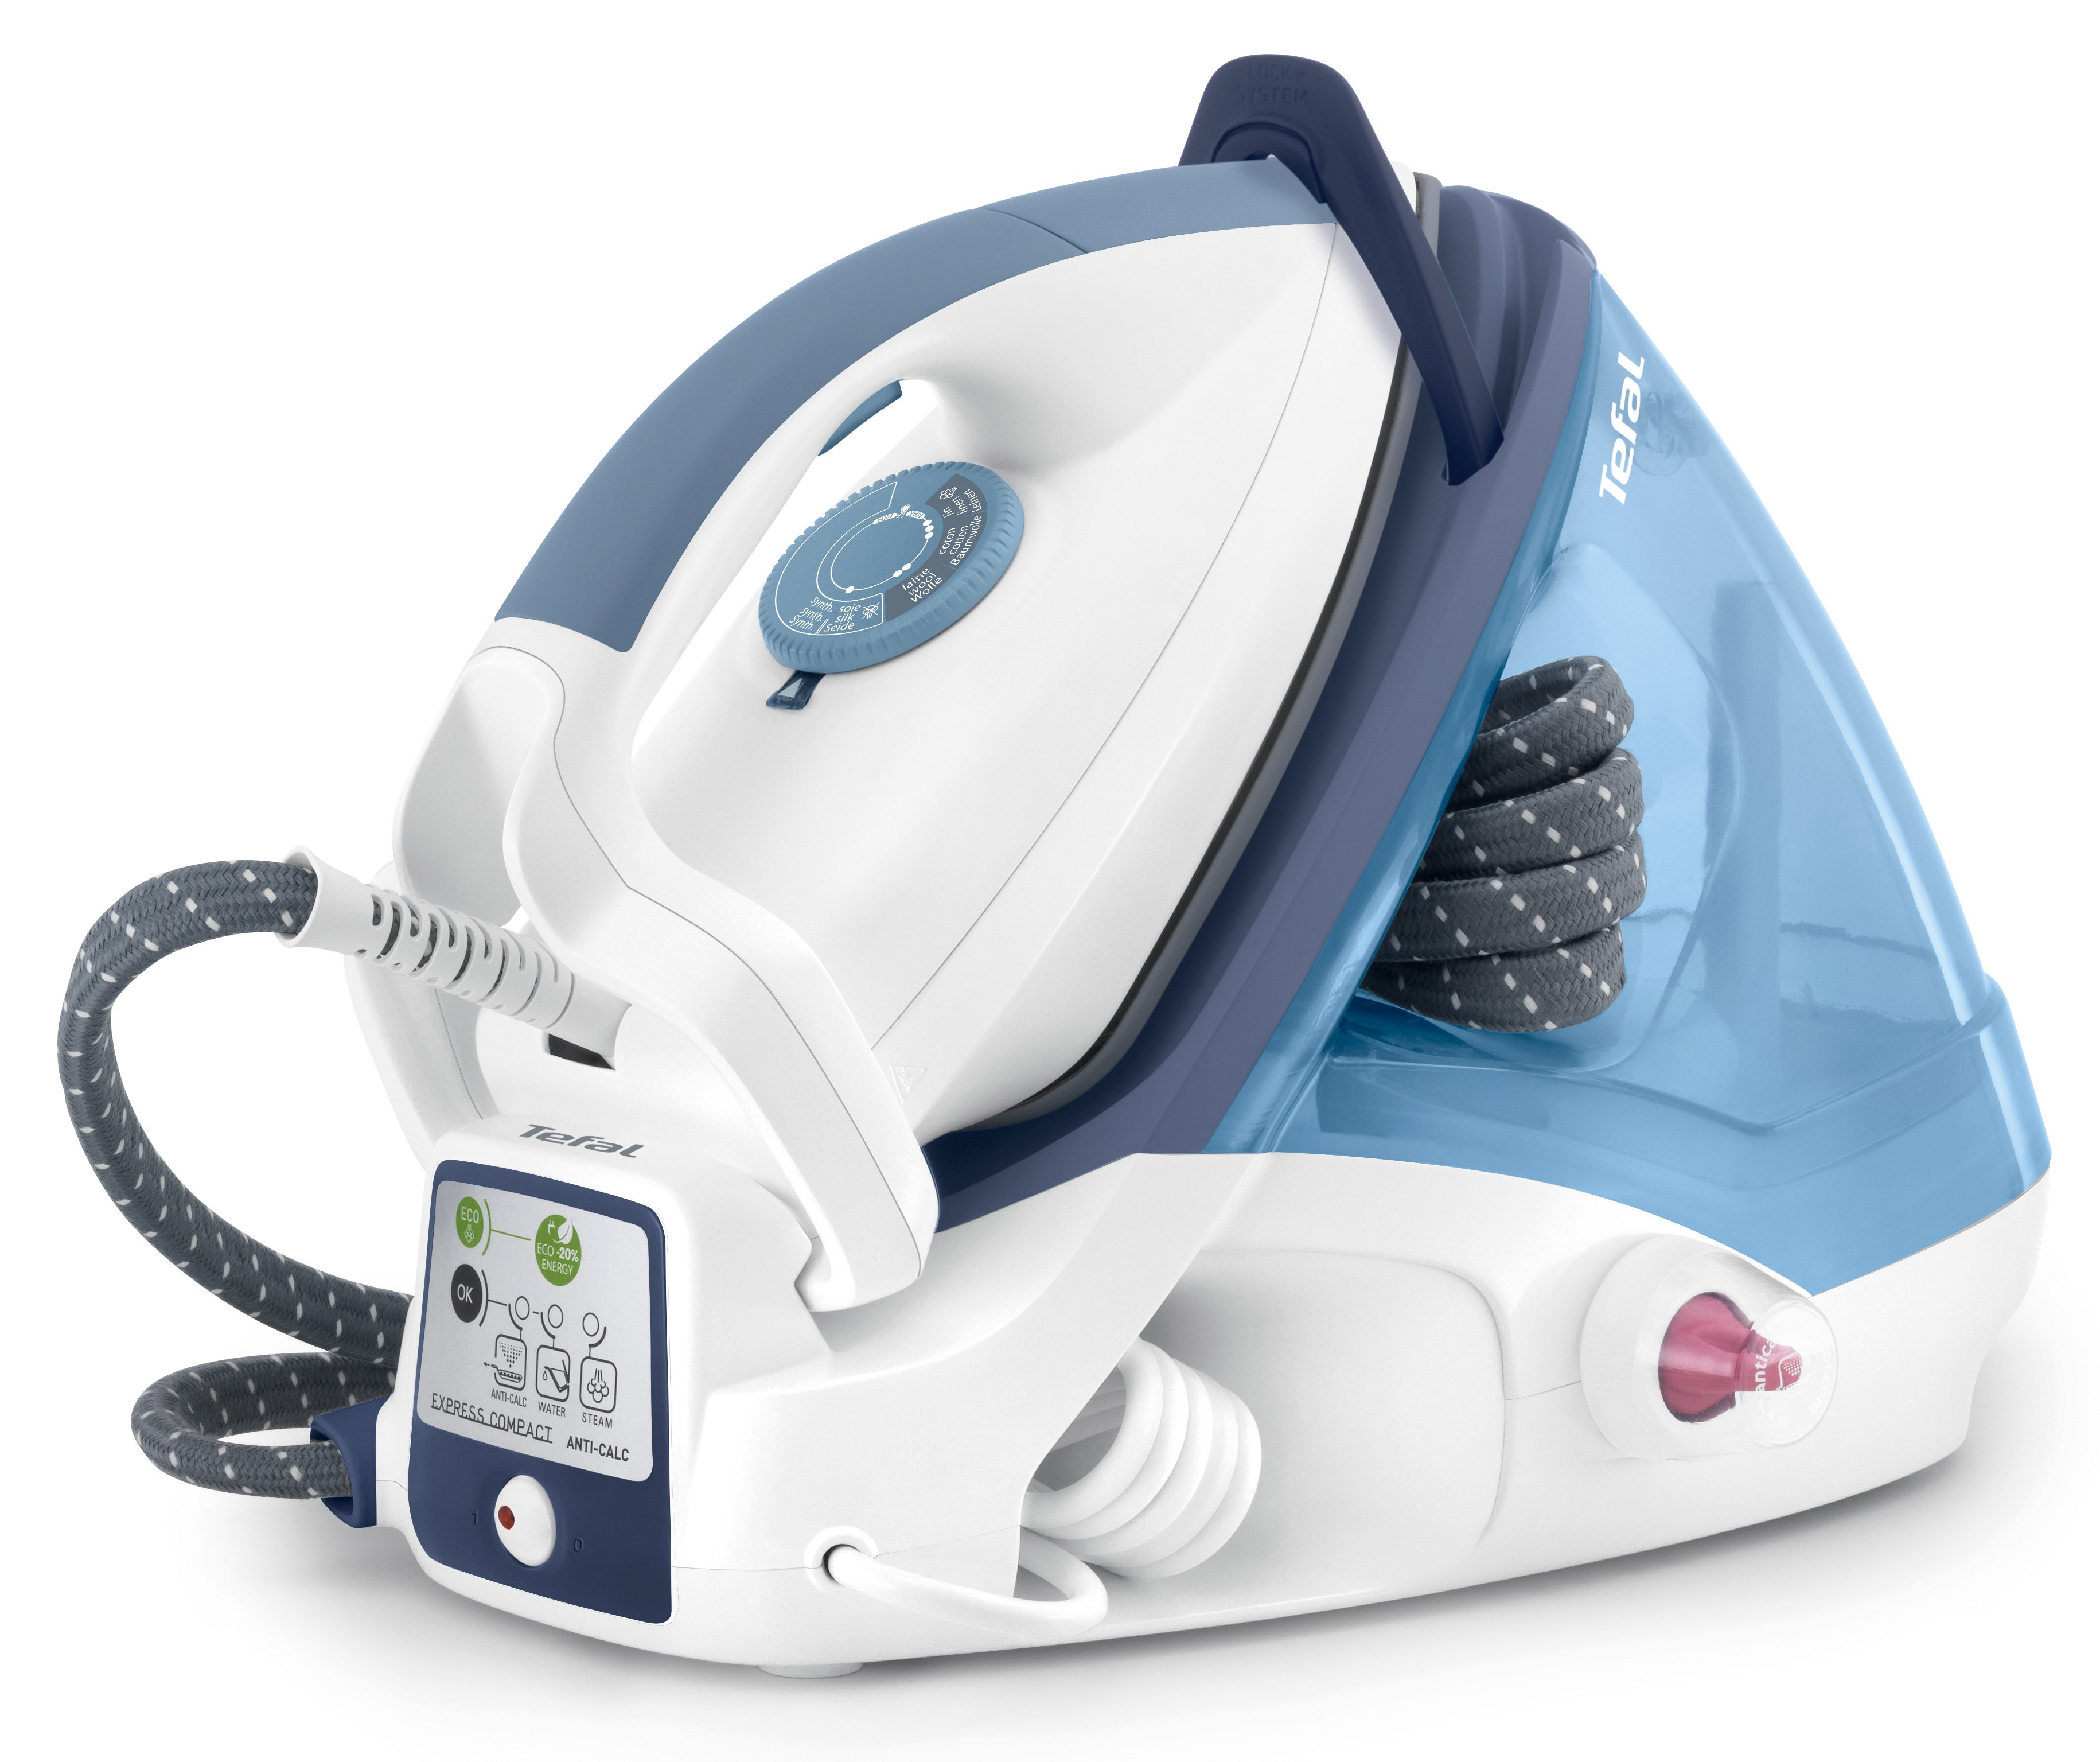 tefal fv2660 ultraglide ani scale steam iron. Black Bedroom Furniture Sets. Home Design Ideas